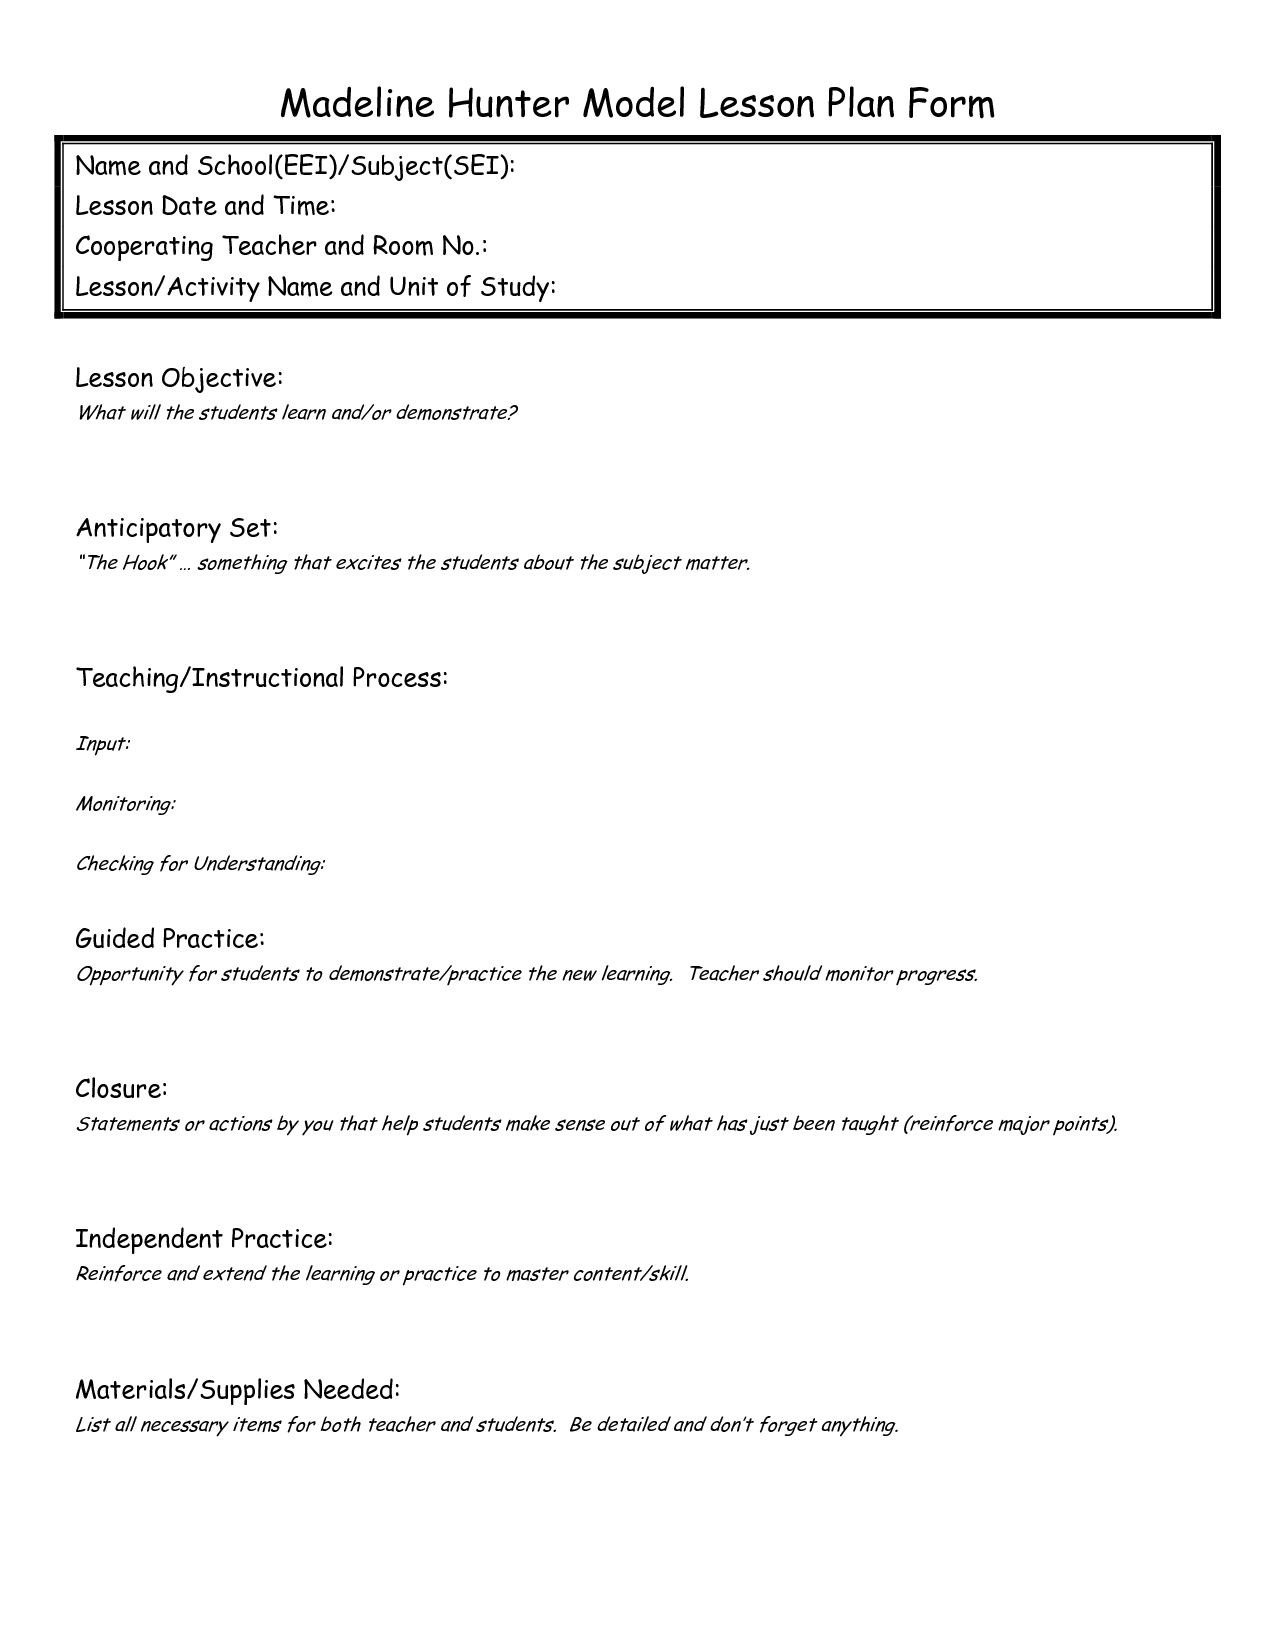 Eei Lesson Plan | Madeline Hunter Lesson Plan, Lesson Plan Within Madeline Hunter Lesson Plan Template Word